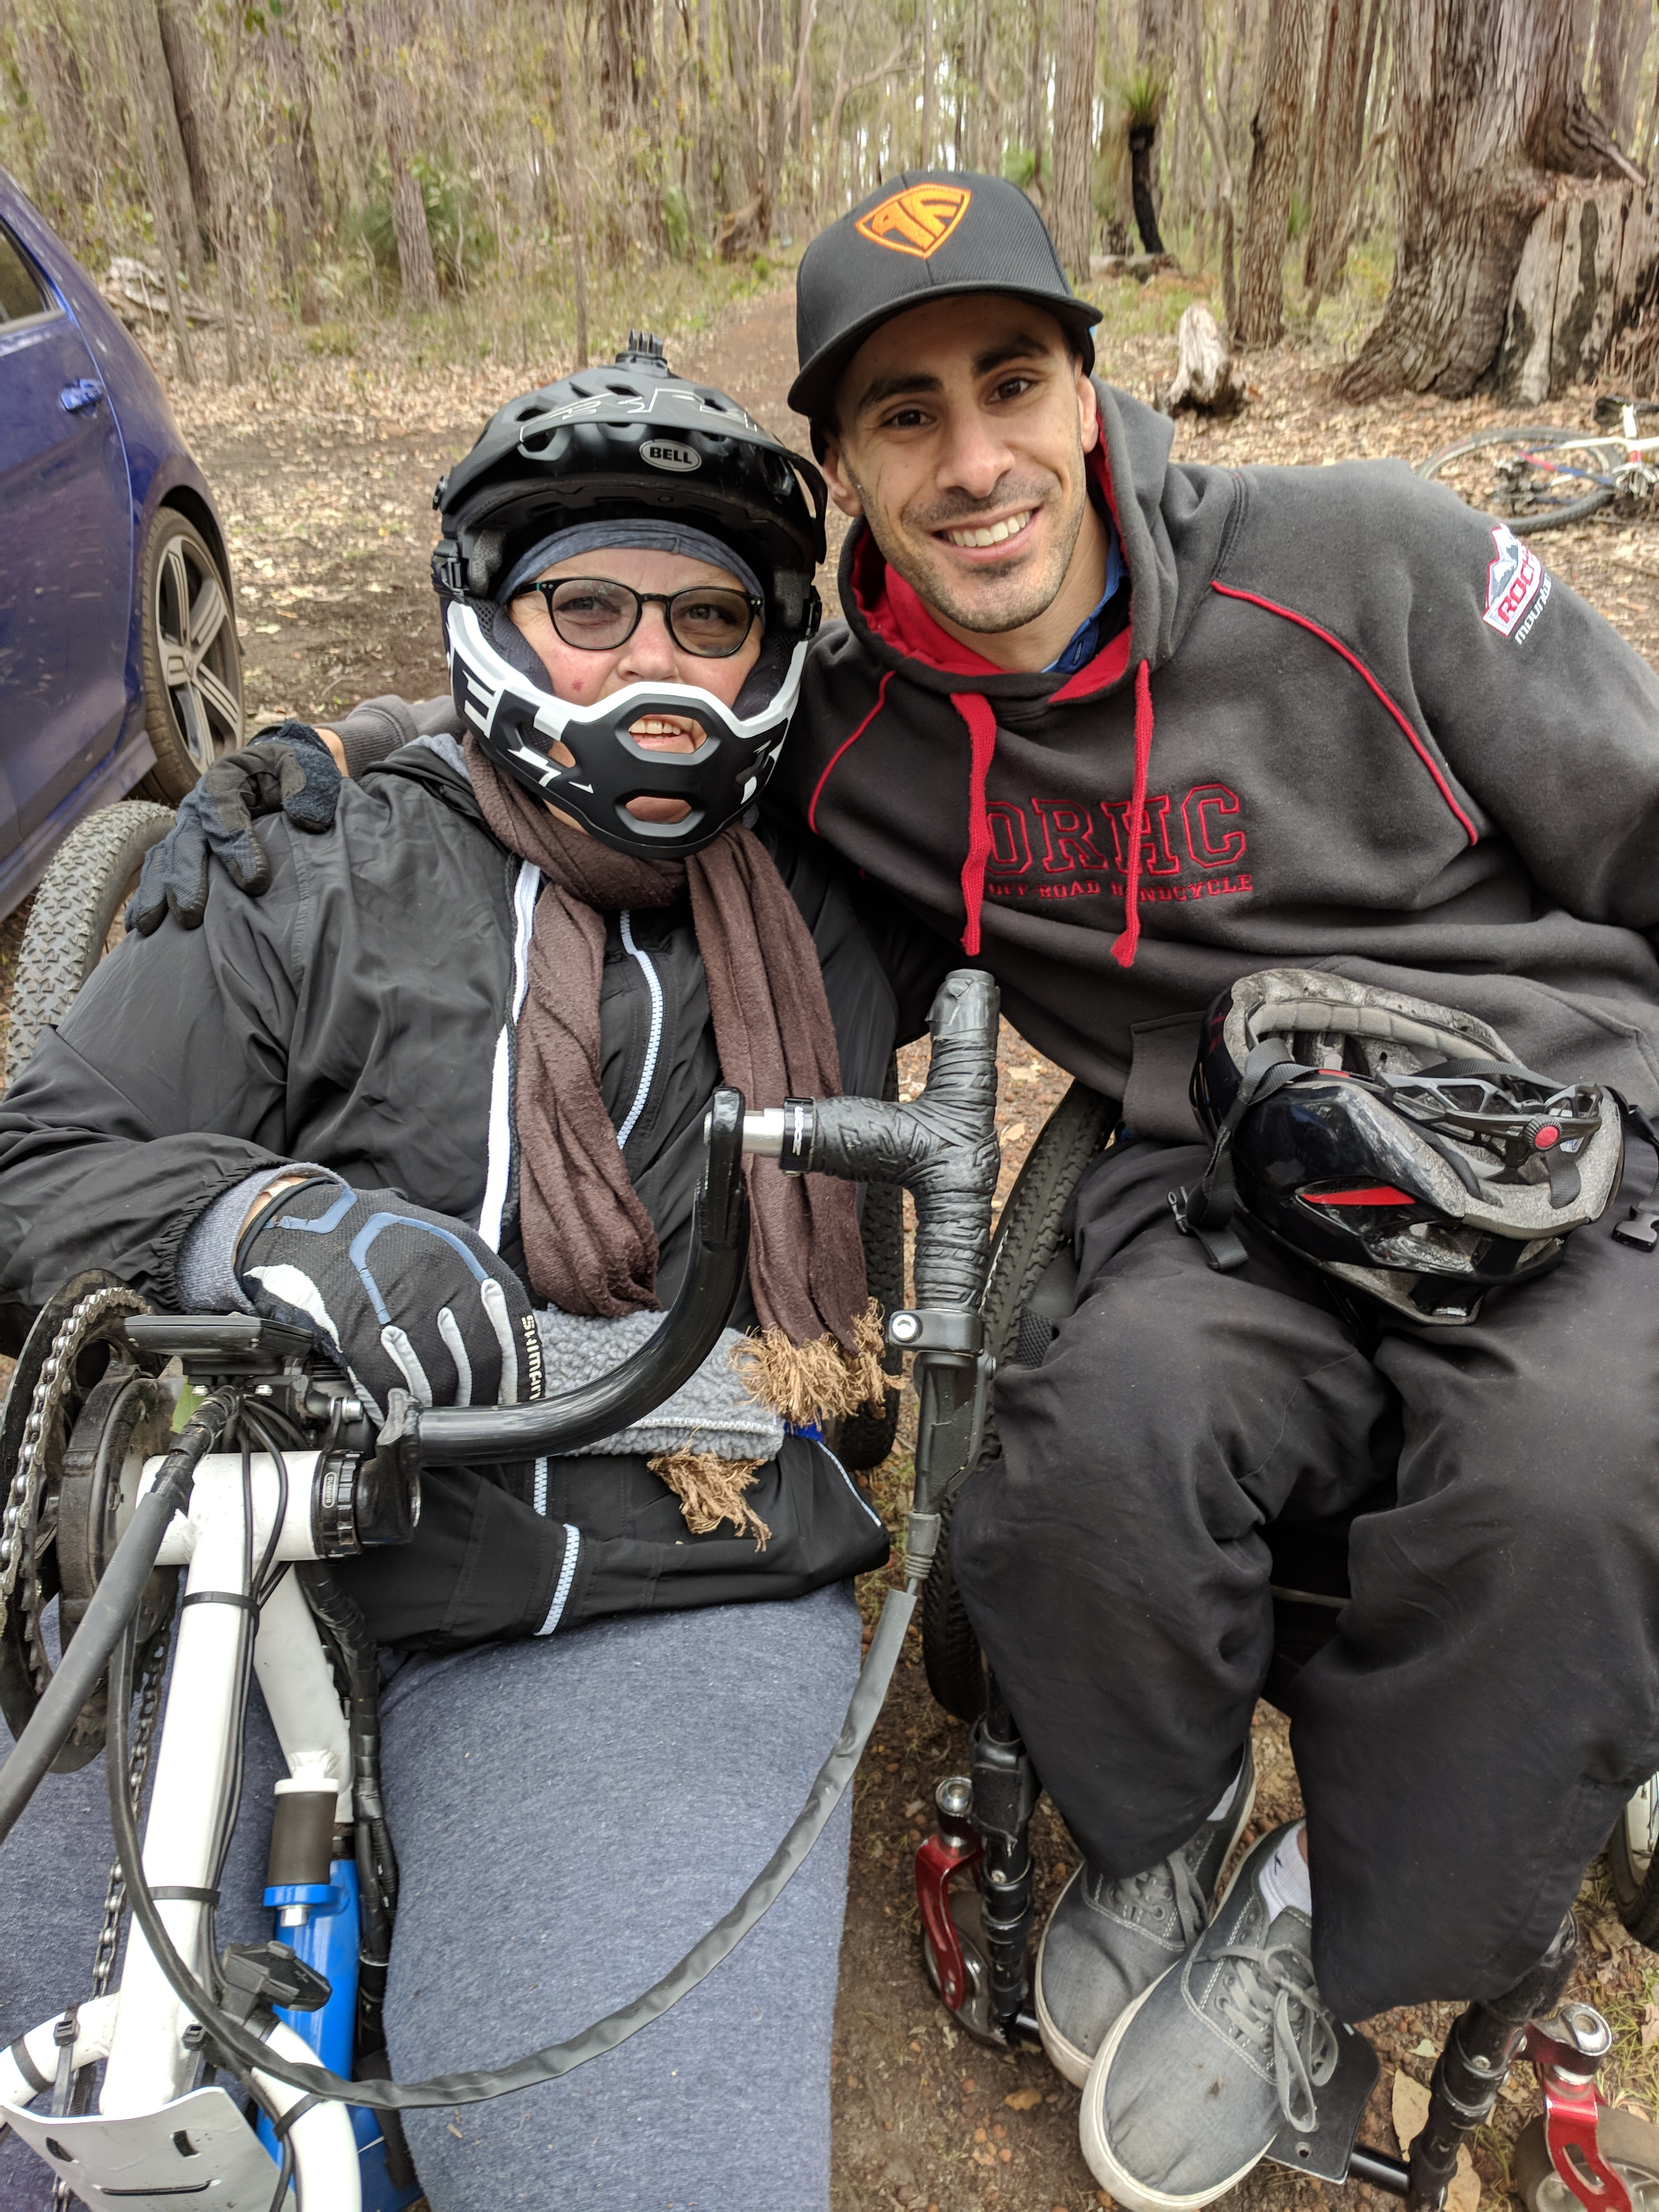 photo of female handcyclist in full helmet and male wheelchair user embracing each other with big smiles